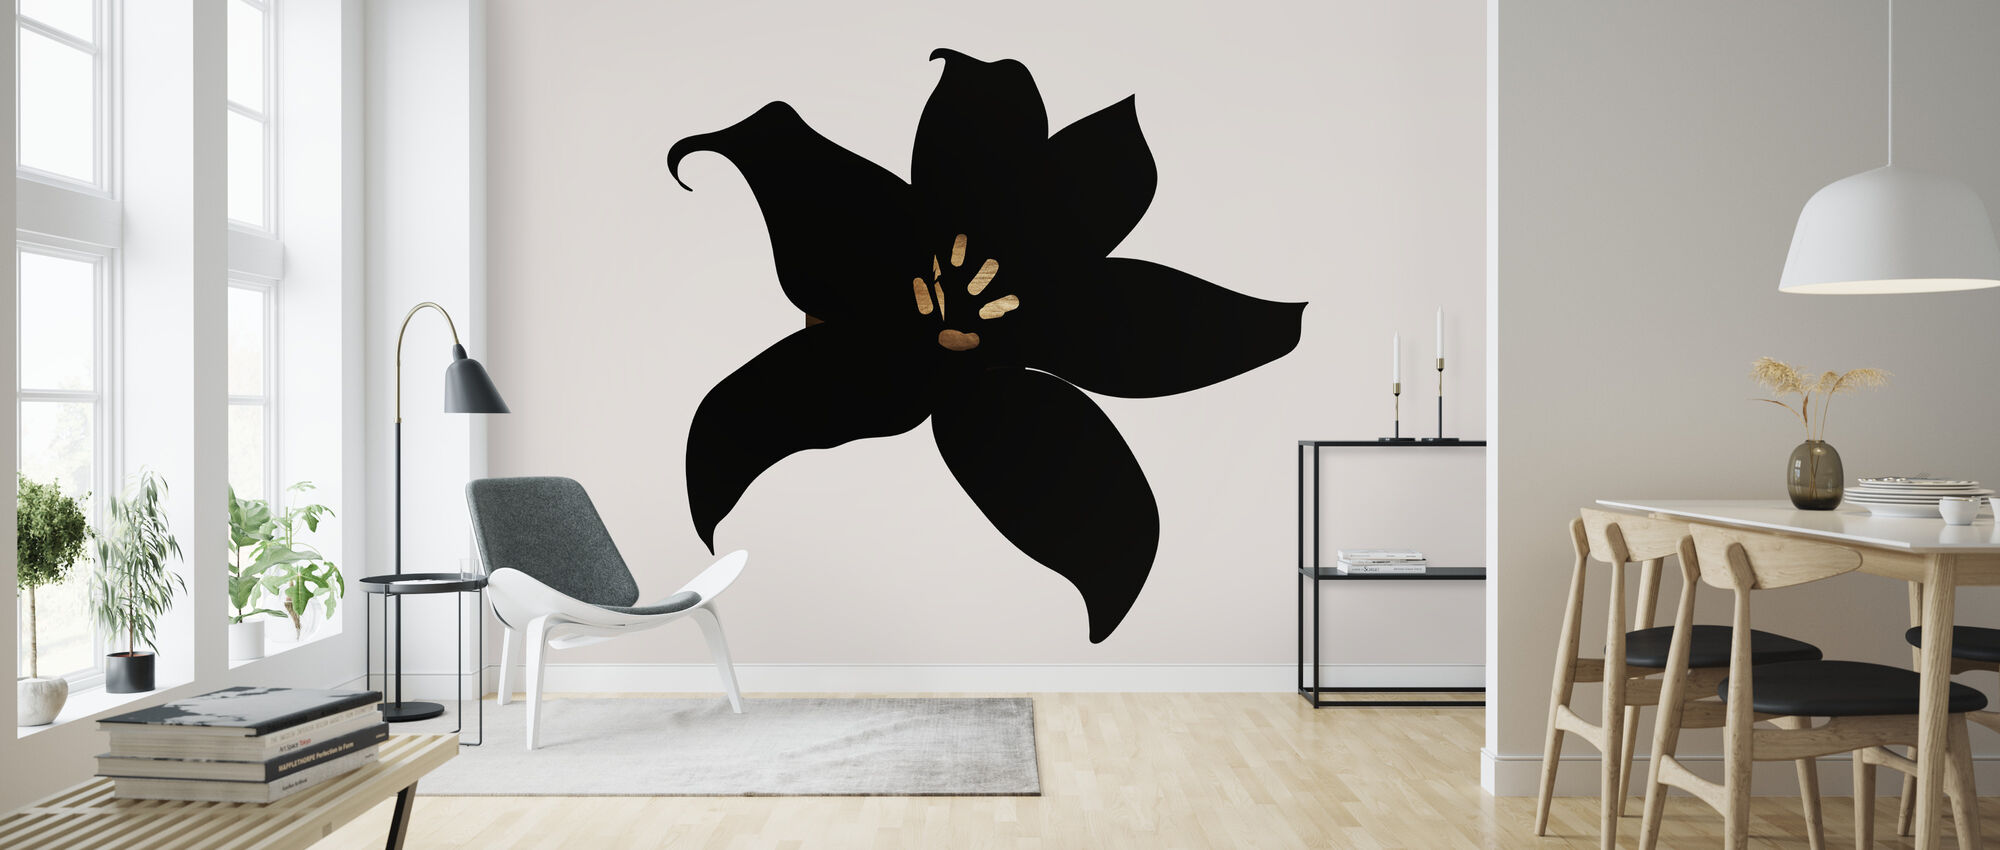 Donkere Orchidee - Behang - Woonkamer